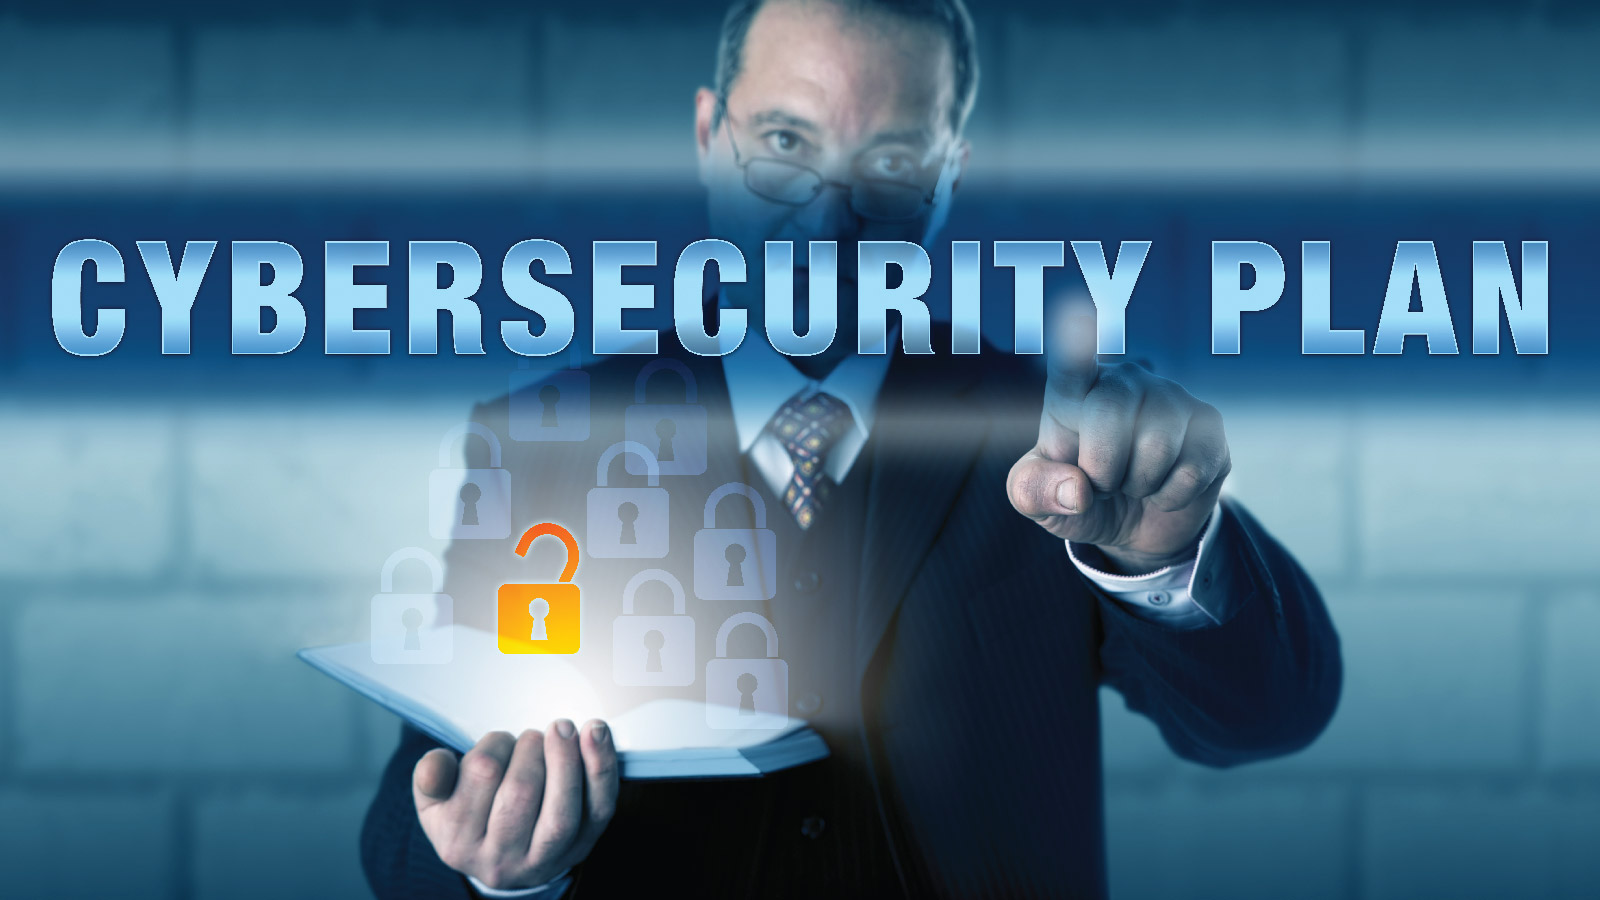 IoT, 5G, network, enterprises, cybersecurity, virtualization, AT&T, report,